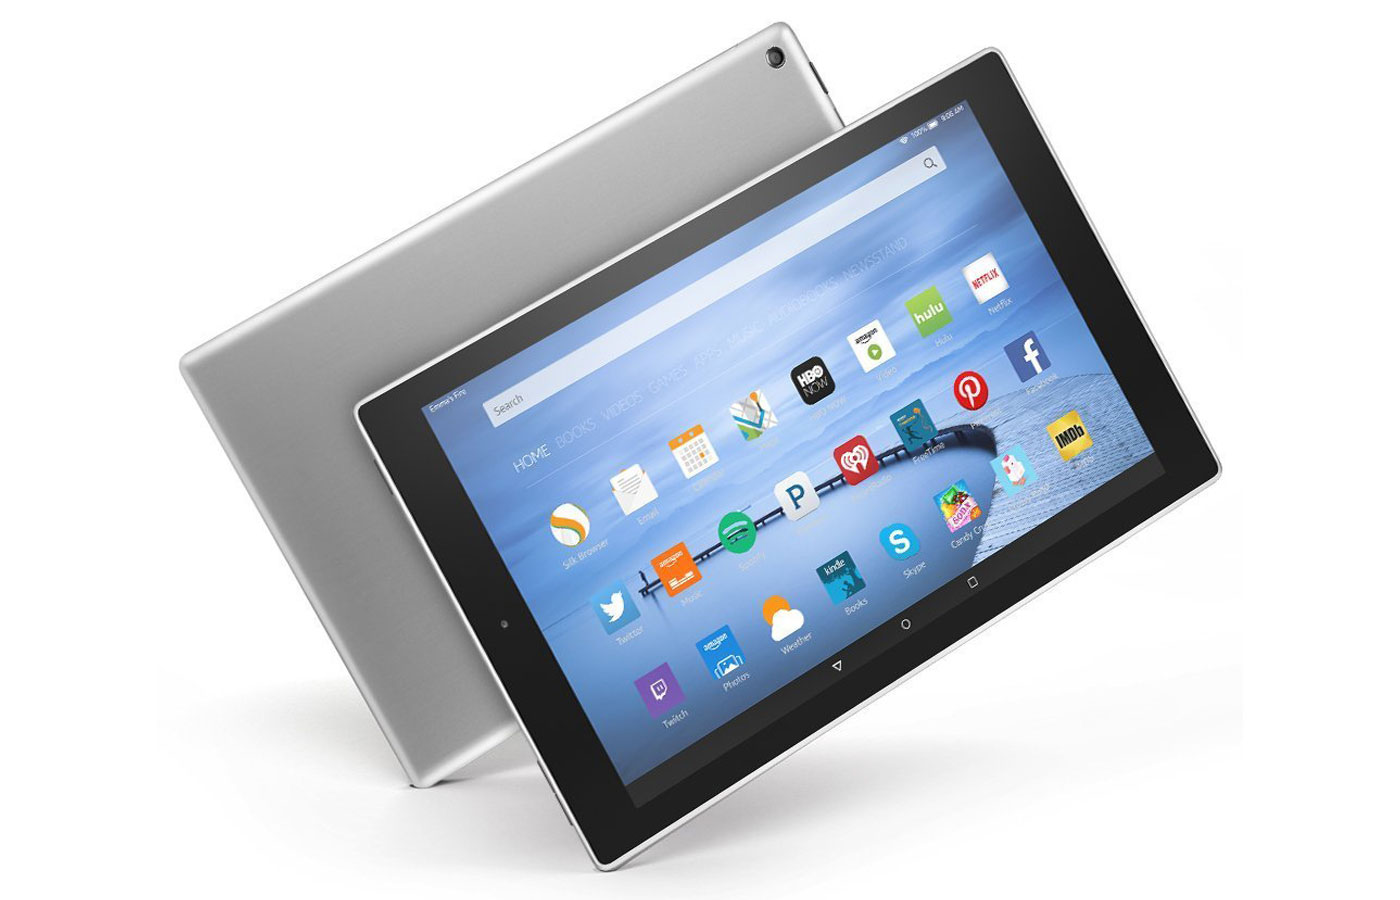 Amazon gives its Fire HD 10 tablet a classier metal shell